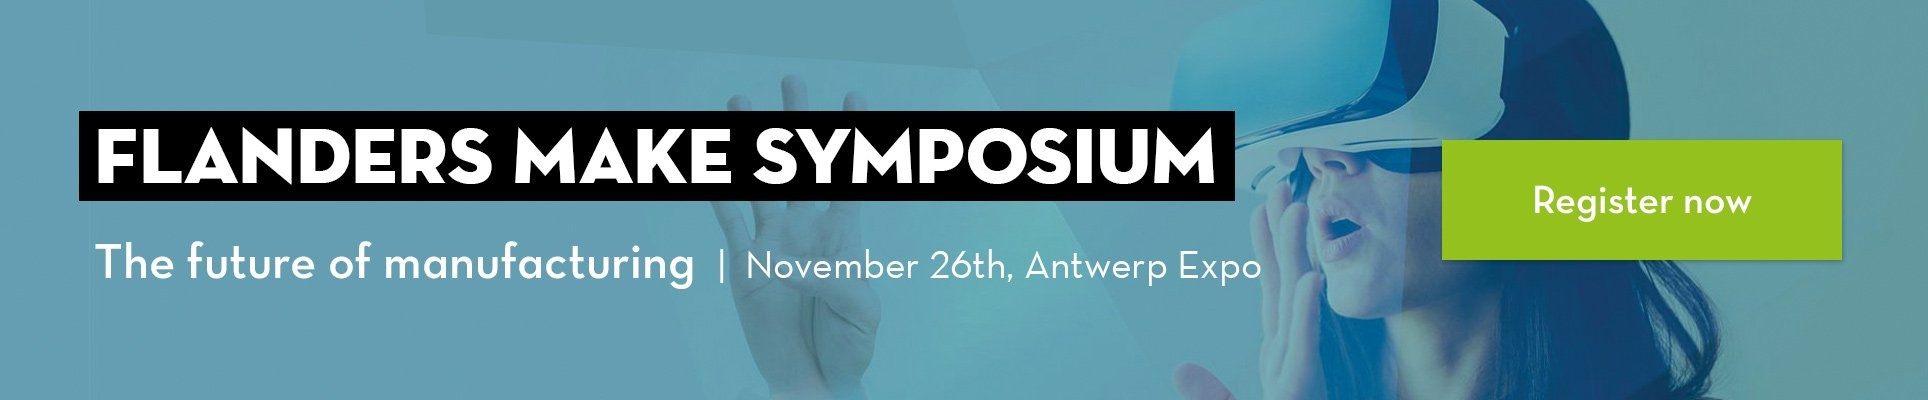 Register now for the Flanders Make Symposium